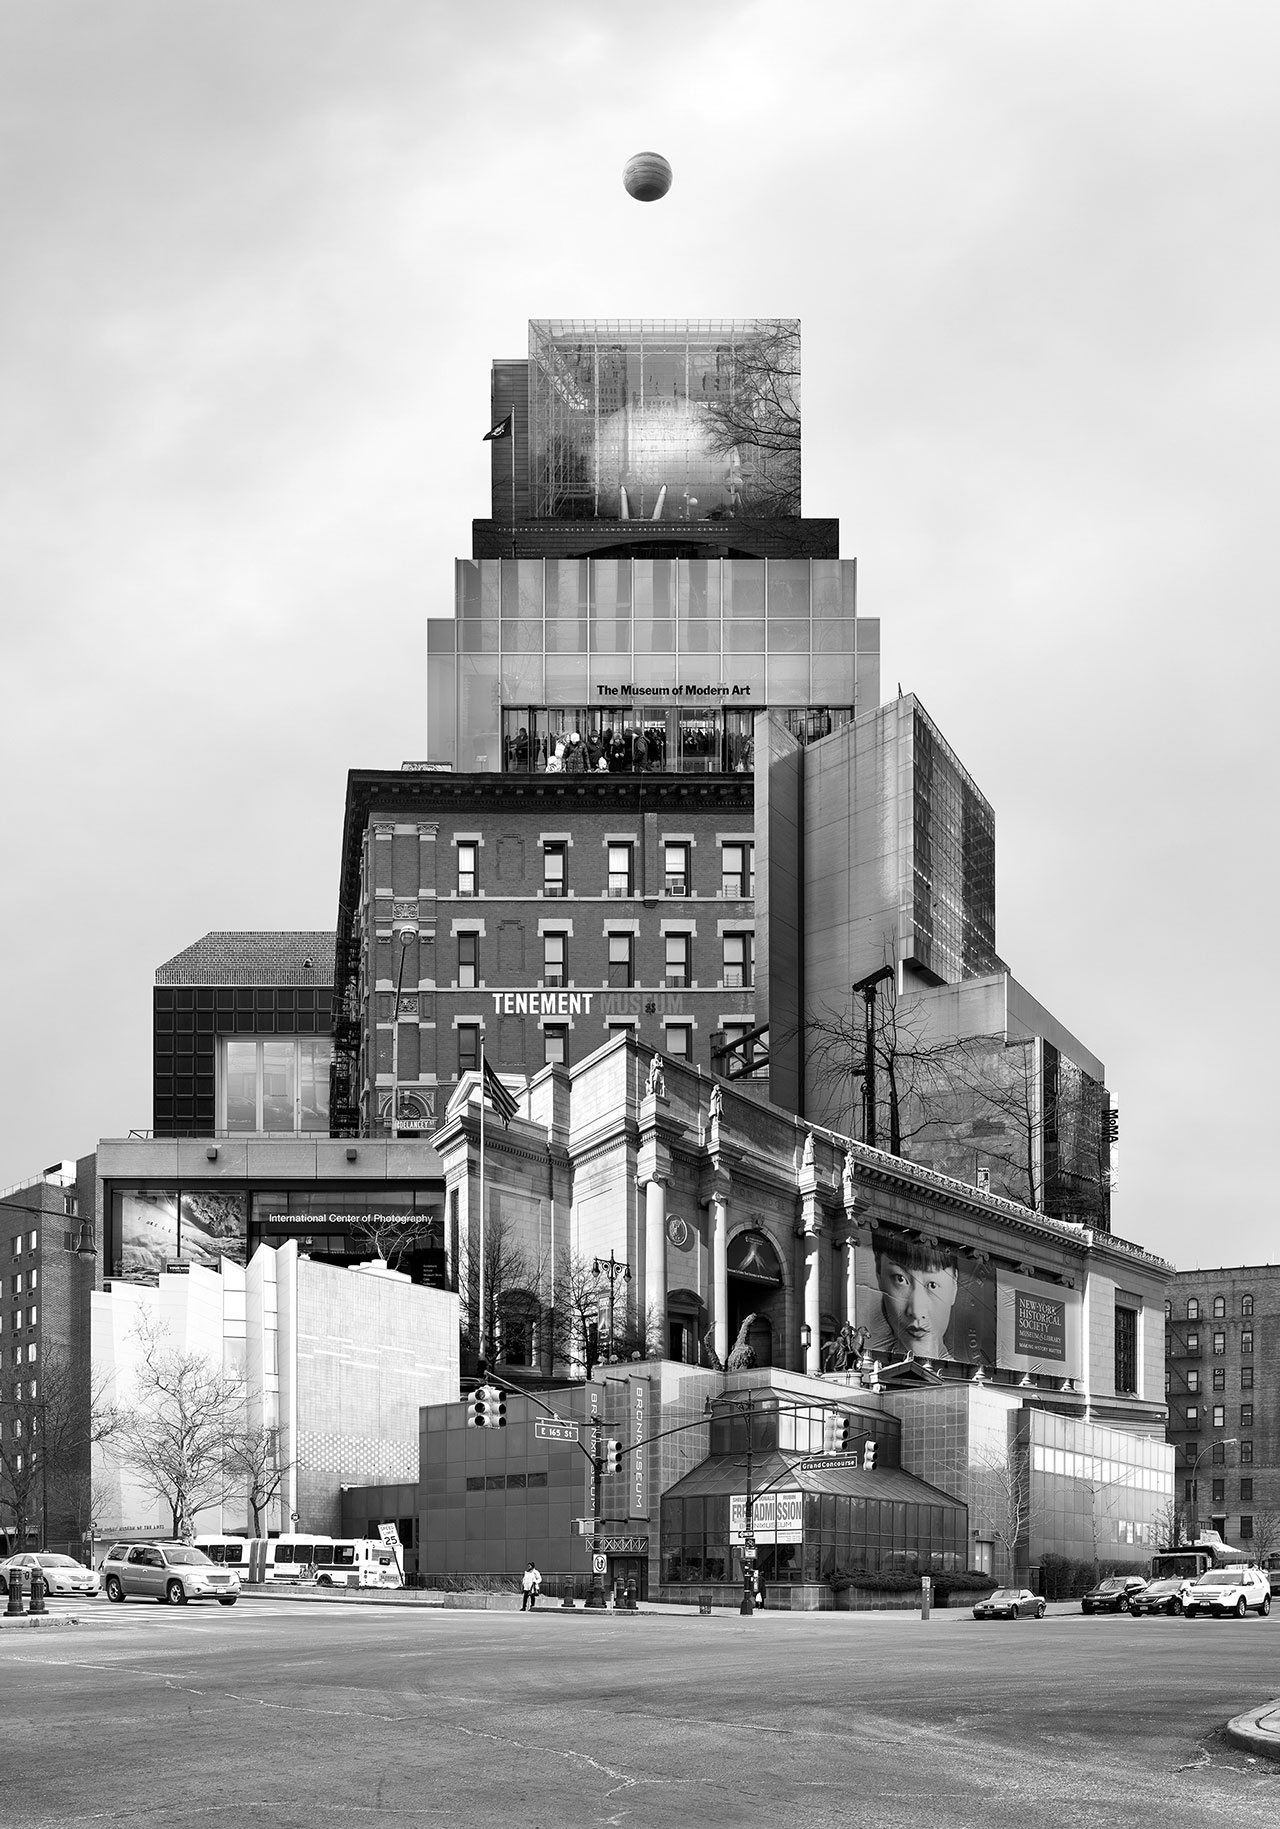 Beomsik Won,Archisculpture 043, 2015. Archival pigment print, 100x70 or 171x120cm.